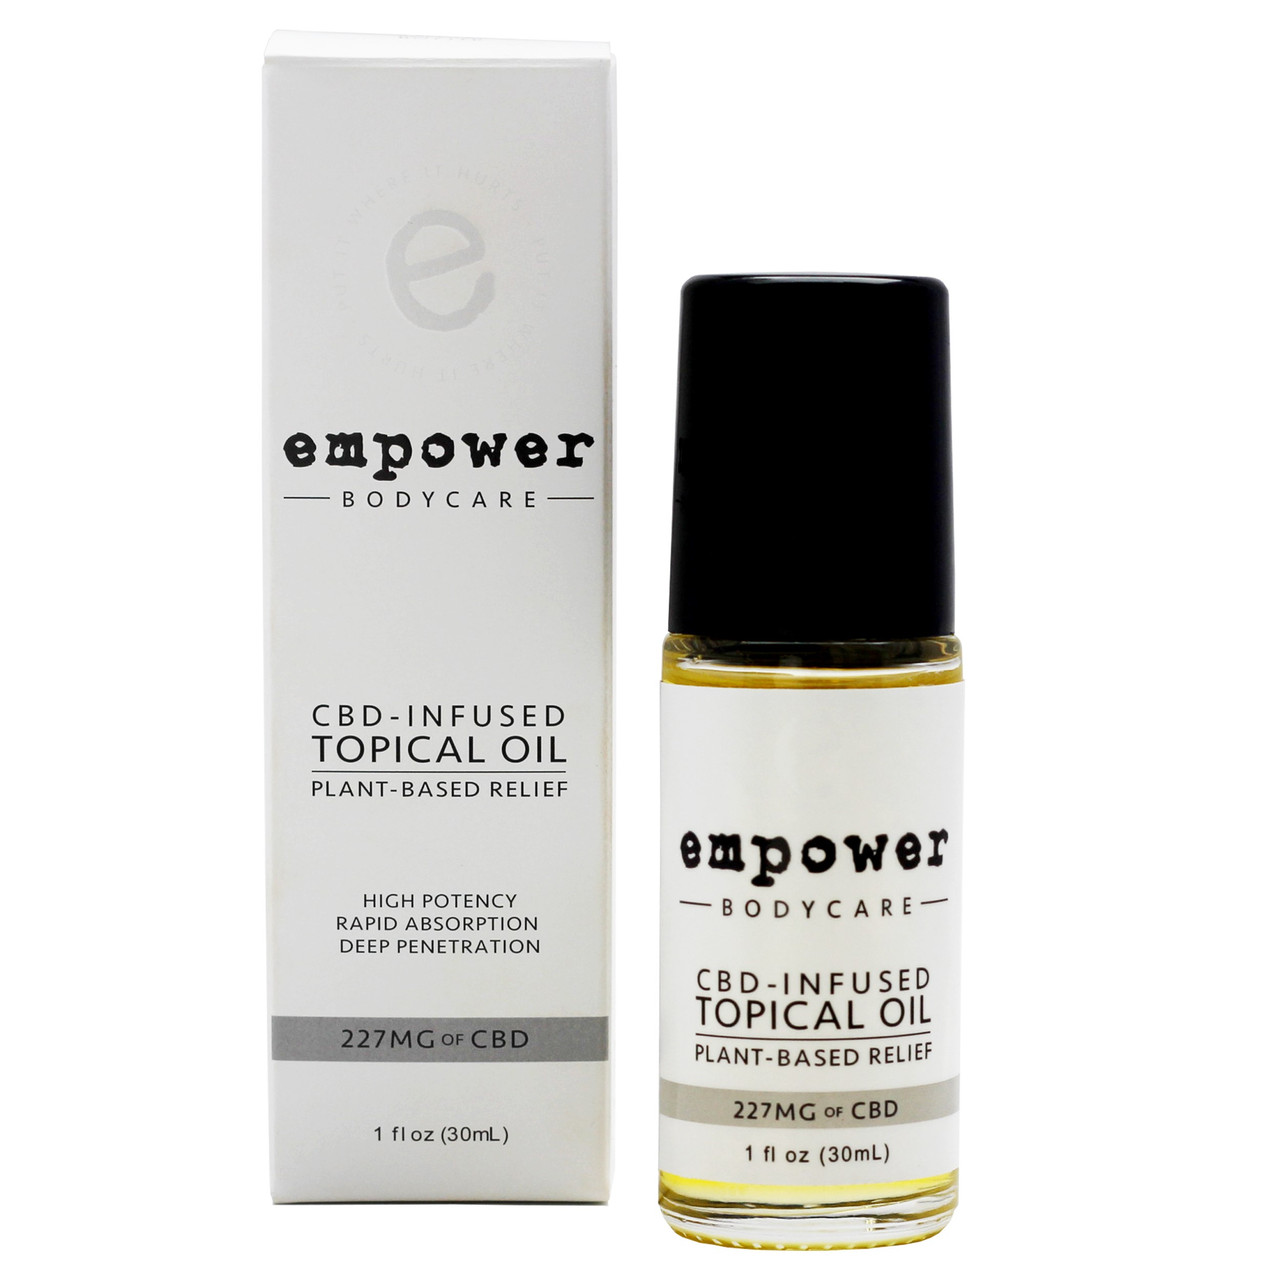 The synergistic combination of essential oils, non-GMO carrier oils, and hemp-derived CBD extract in Empower® Topical Relief Oil soothes discomfort* and provides focused relief.